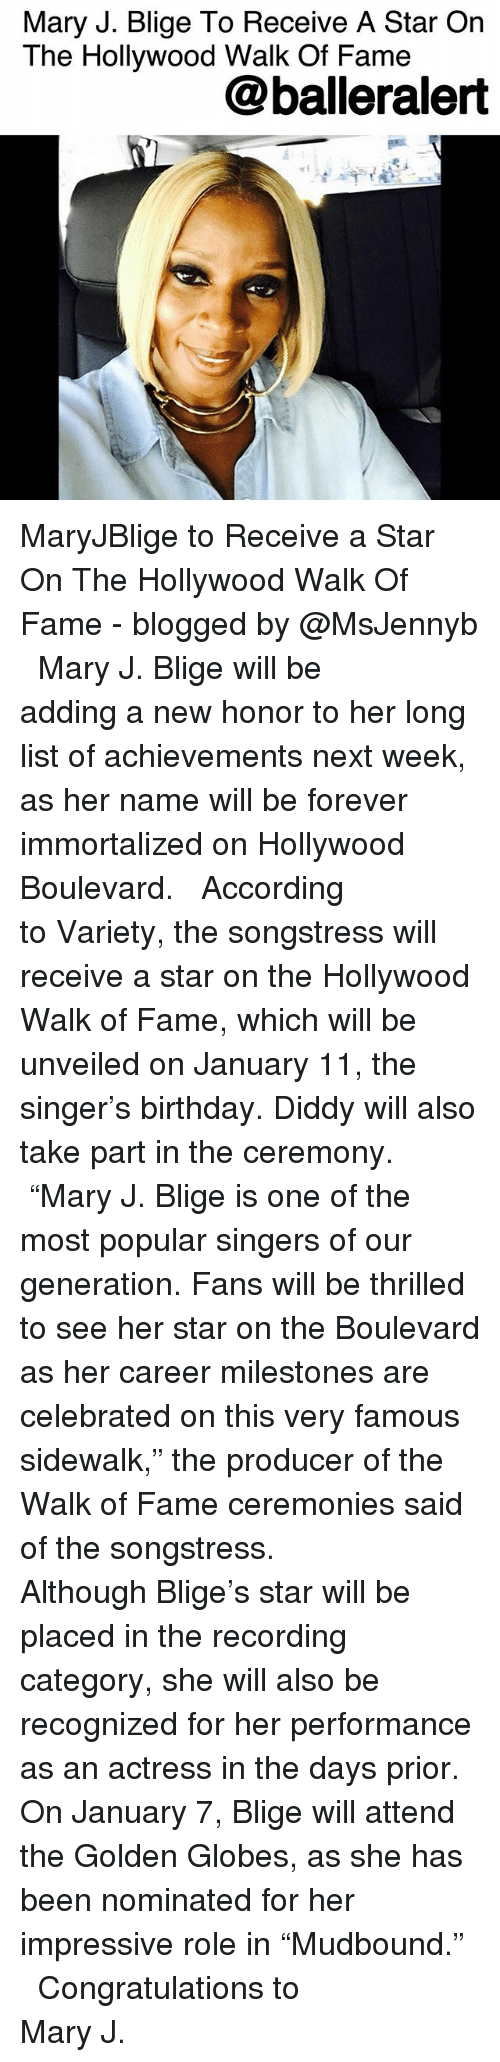 "mary j: Mary J. Blige To Receive A Star On  The Hollywood Walk Of Famee  @balleralert MaryJBlige to Receive a Star On The Hollywood Walk Of Fame - blogged by @MsJennyb ⠀⠀⠀⠀⠀⠀⠀ ⠀⠀⠀⠀⠀⠀⠀ Mary J. Blige will be adding a new honor to her long list of achievements next week, as her name will be forever immortalized on Hollywood Boulevard. ⠀⠀⠀⠀⠀⠀⠀ ⠀⠀⠀⠀⠀⠀⠀ According to Variety, the songstress will receive a star on the Hollywood Walk of Fame, which will be unveiled on January 11, the singer's birthday. Diddy will also take part in the ceremony. ⠀⠀⠀⠀⠀⠀⠀ ⠀⠀⠀⠀⠀⠀⠀ ""Mary J. Blige is one of the most popular singers of our generation. Fans will be thrilled to see her star on the Boulevard as her career milestones are celebrated on this very famous sidewalk,"" the producer of the Walk of Fame ceremonies said of the songstress. ⠀⠀⠀⠀⠀⠀⠀ ⠀⠀⠀⠀⠀⠀⠀ Although Blige's star will be placed in the recording category, she will also be recognized for her performance as an actress in the days prior. On January 7, Blige will attend the Golden Globes, as she has been nominated for her impressive role in ""Mudbound."" ⠀⠀⠀⠀⠀⠀⠀ ⠀⠀⠀⠀⠀⠀⠀ Congratulations to Mary J."